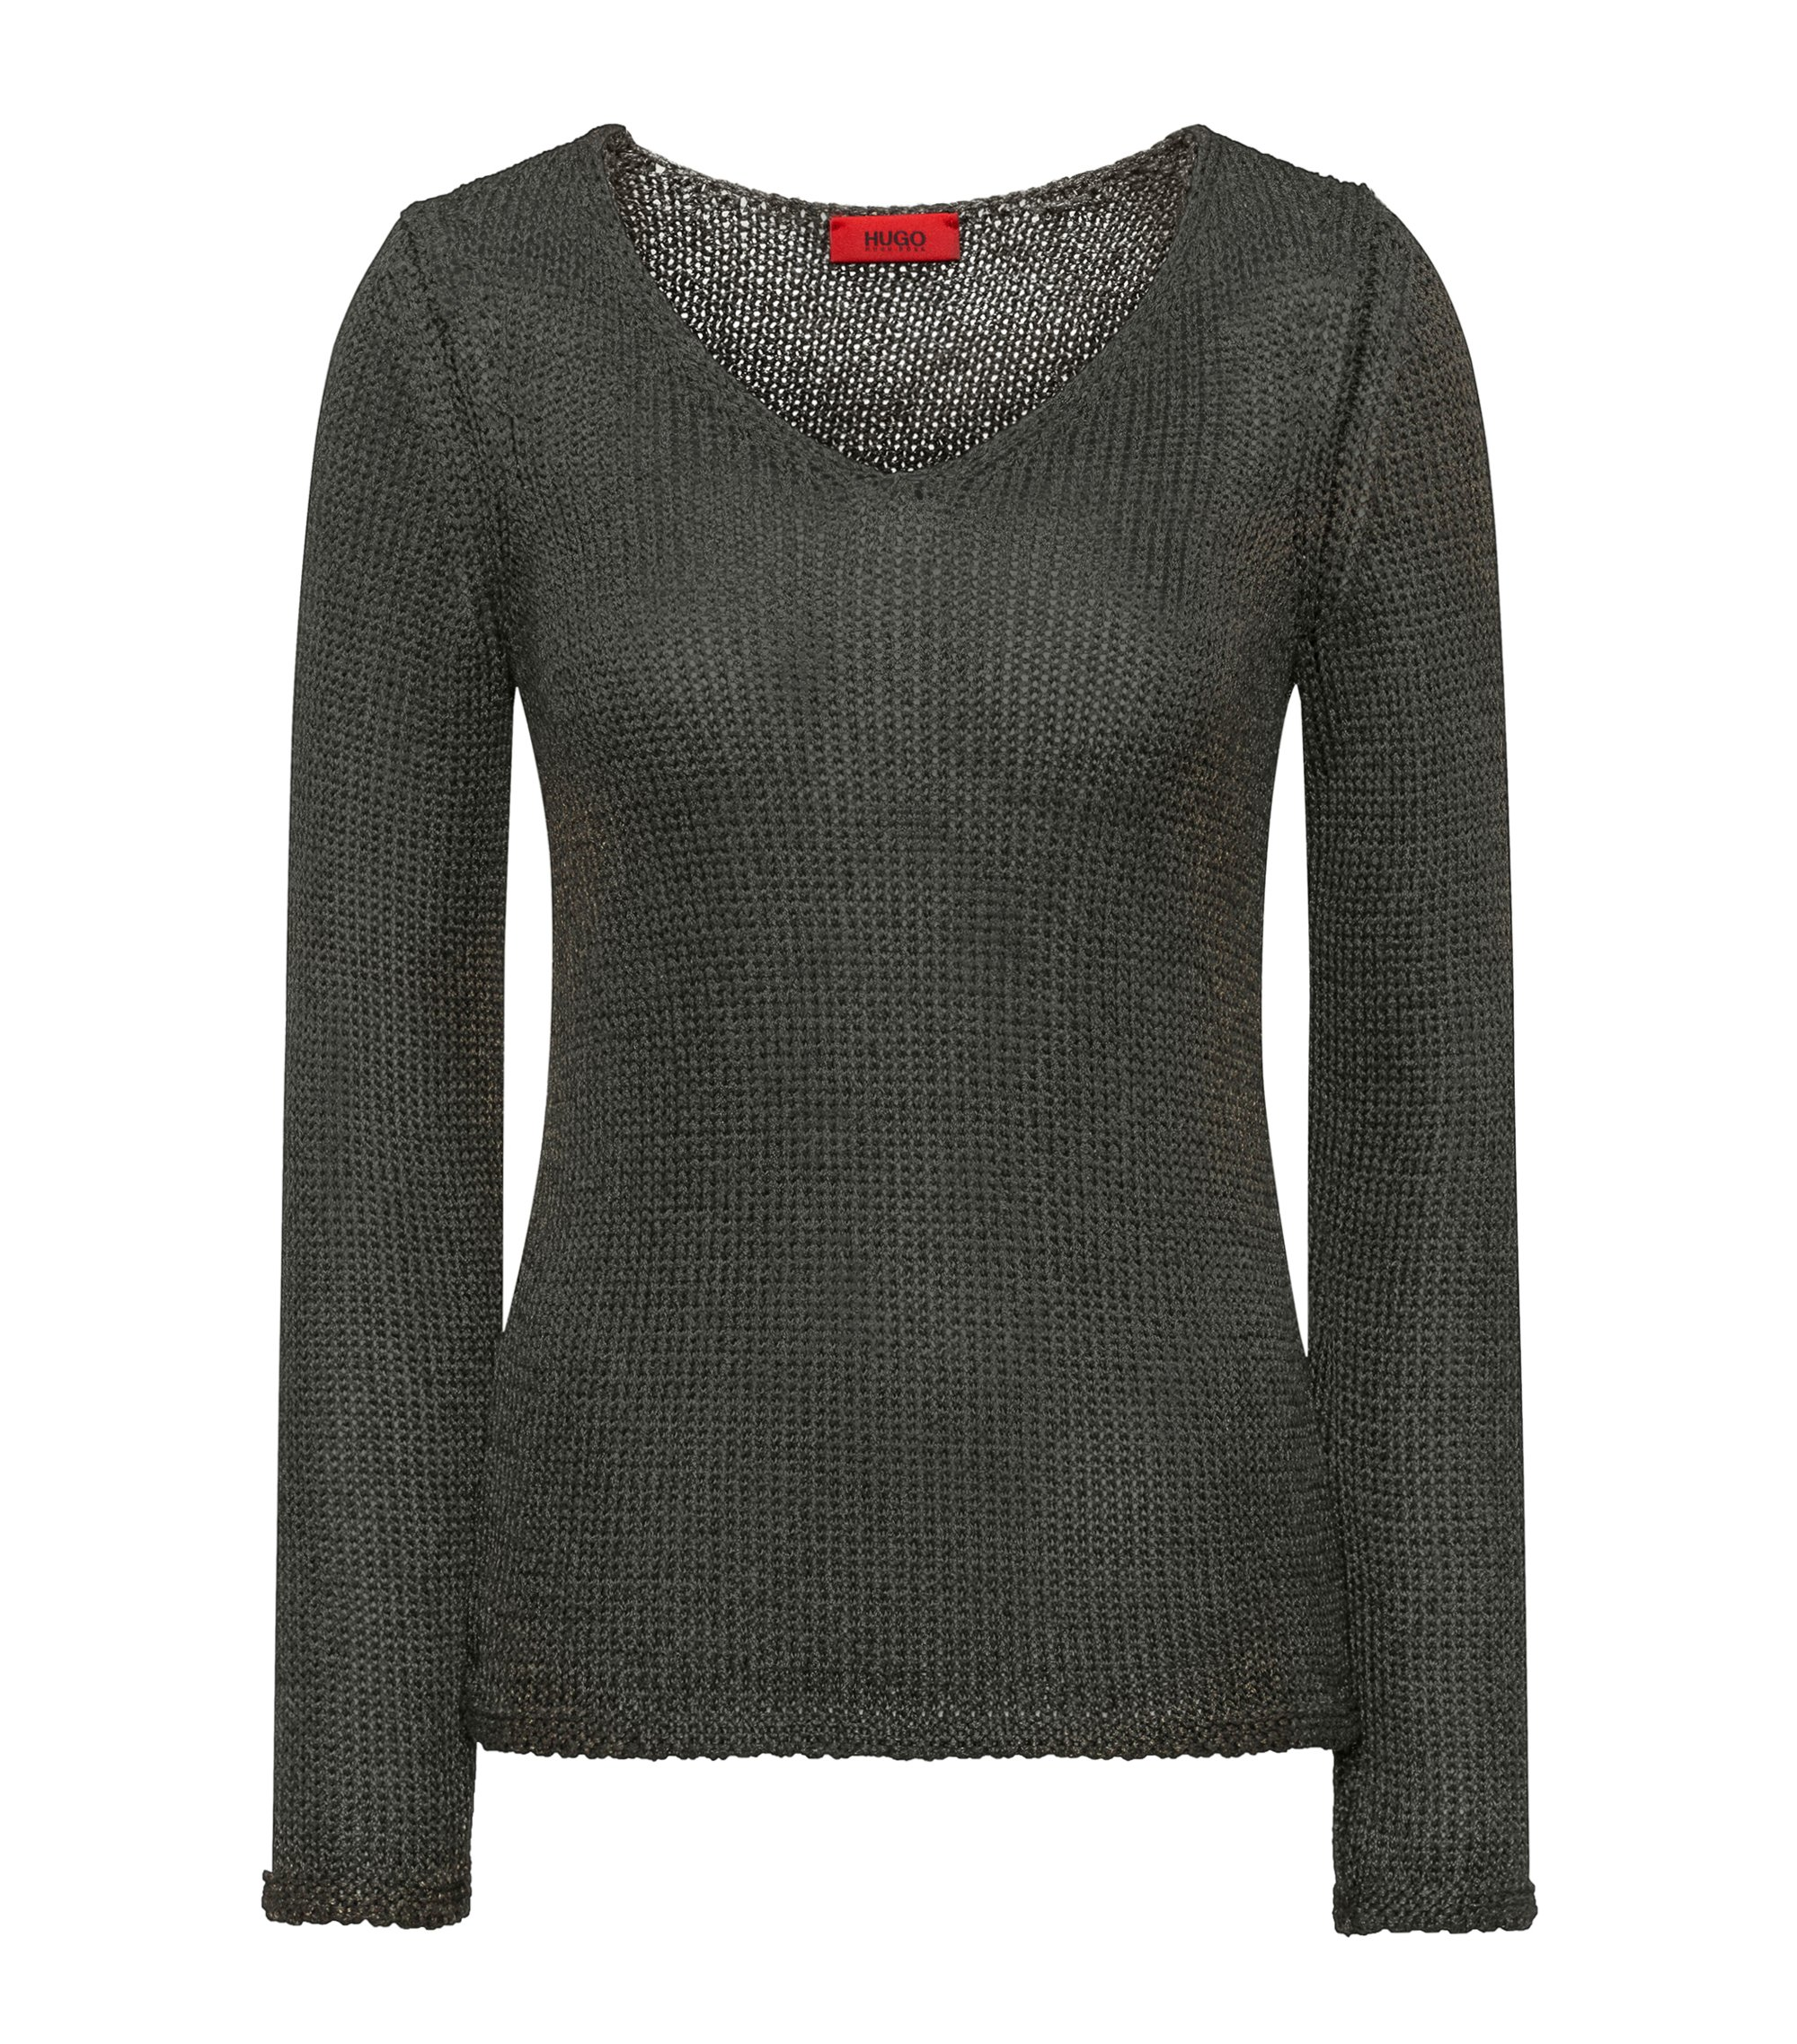 V-neck sweater in shimmer-effect tape yarn, Green